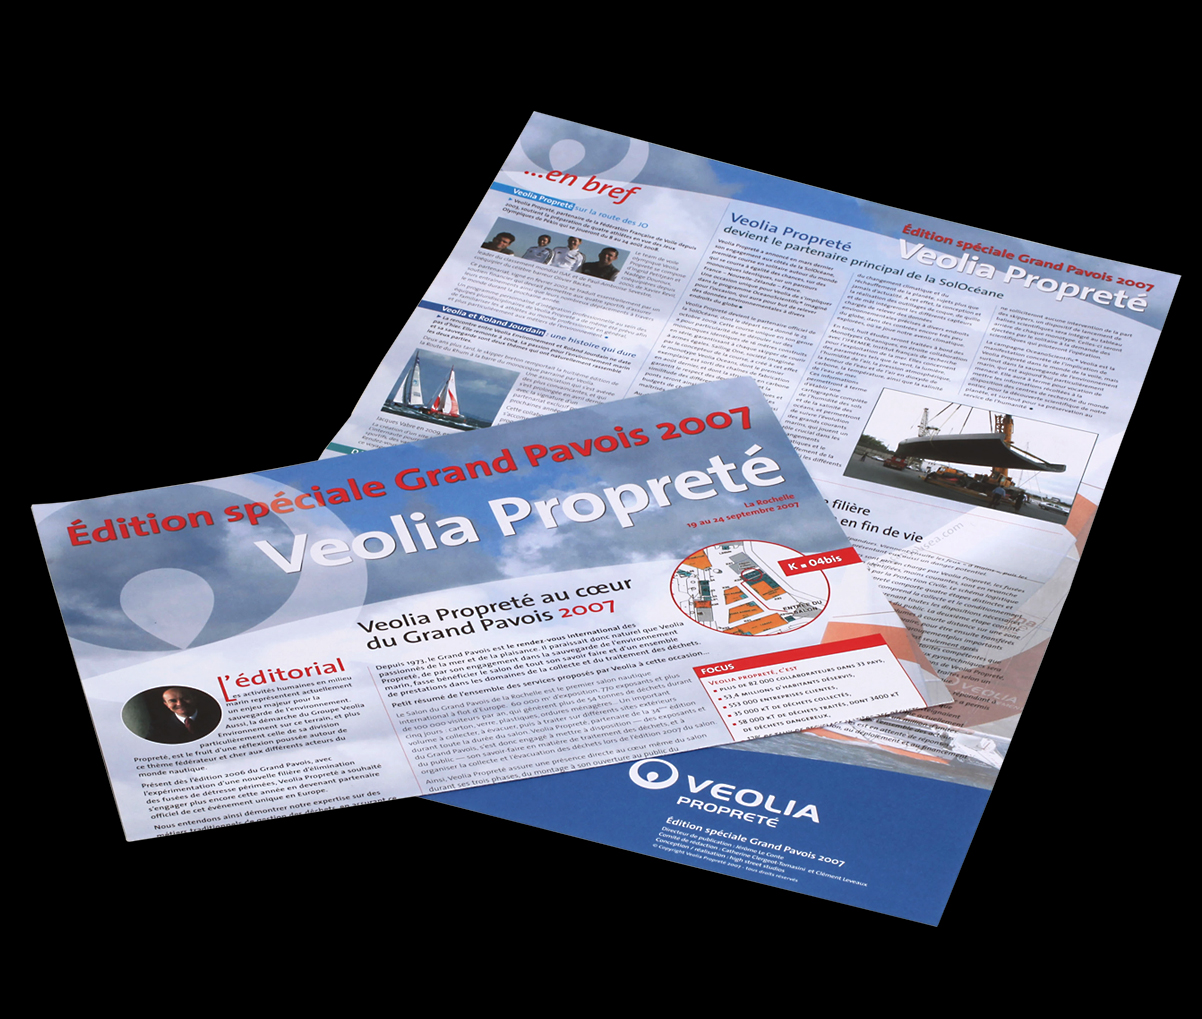 Veolia Propreté - Newsletter - cover and back